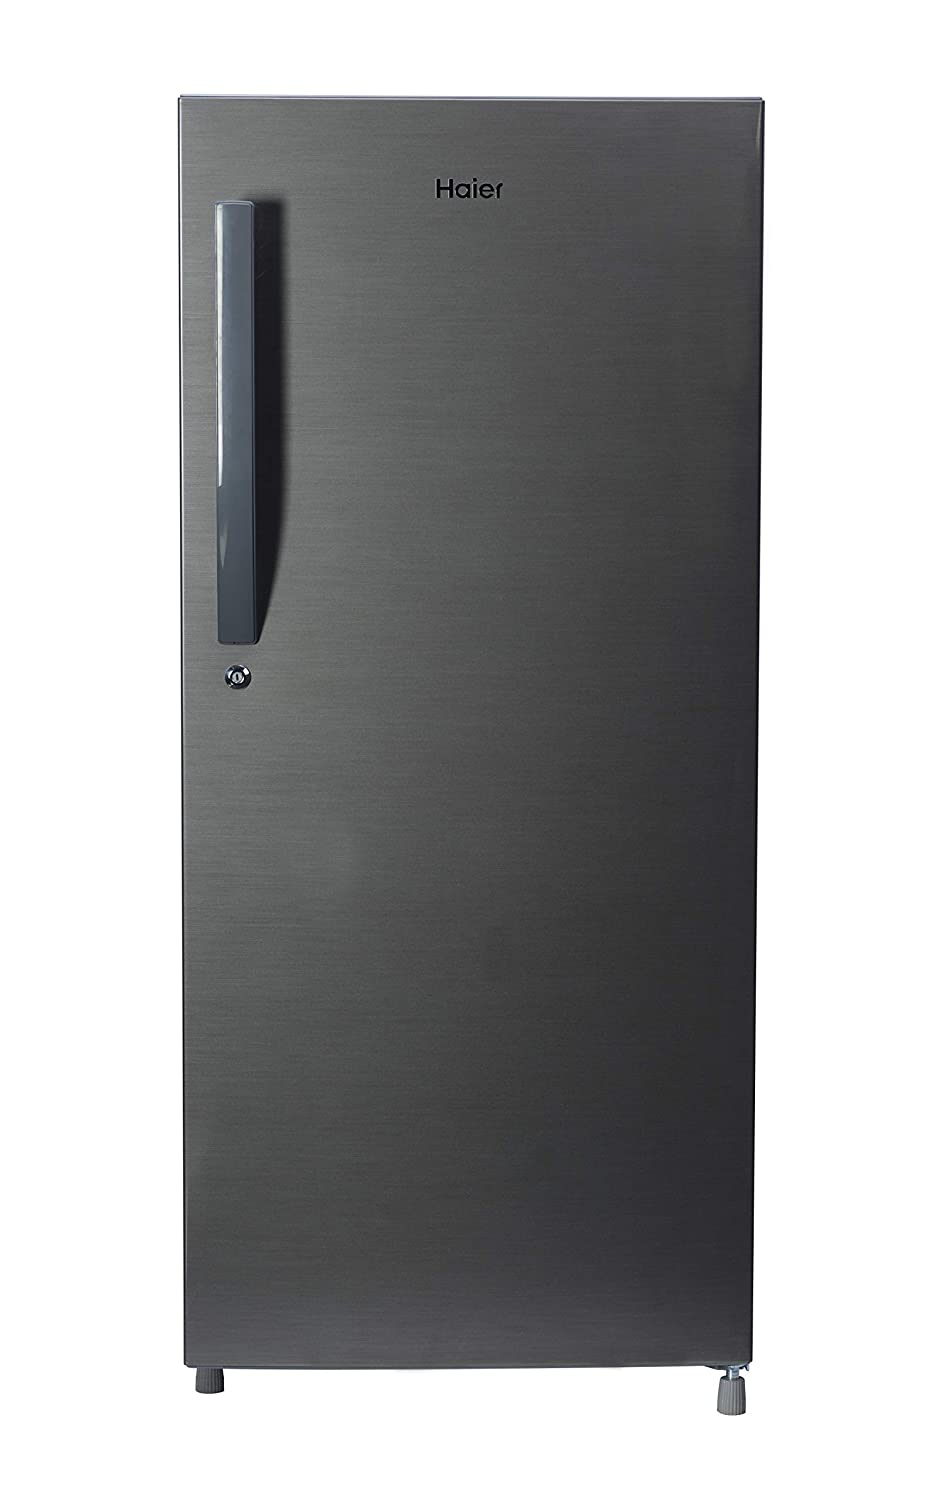 Haier 195L 5 Star Direct-Cool Single-Door Refrigerator